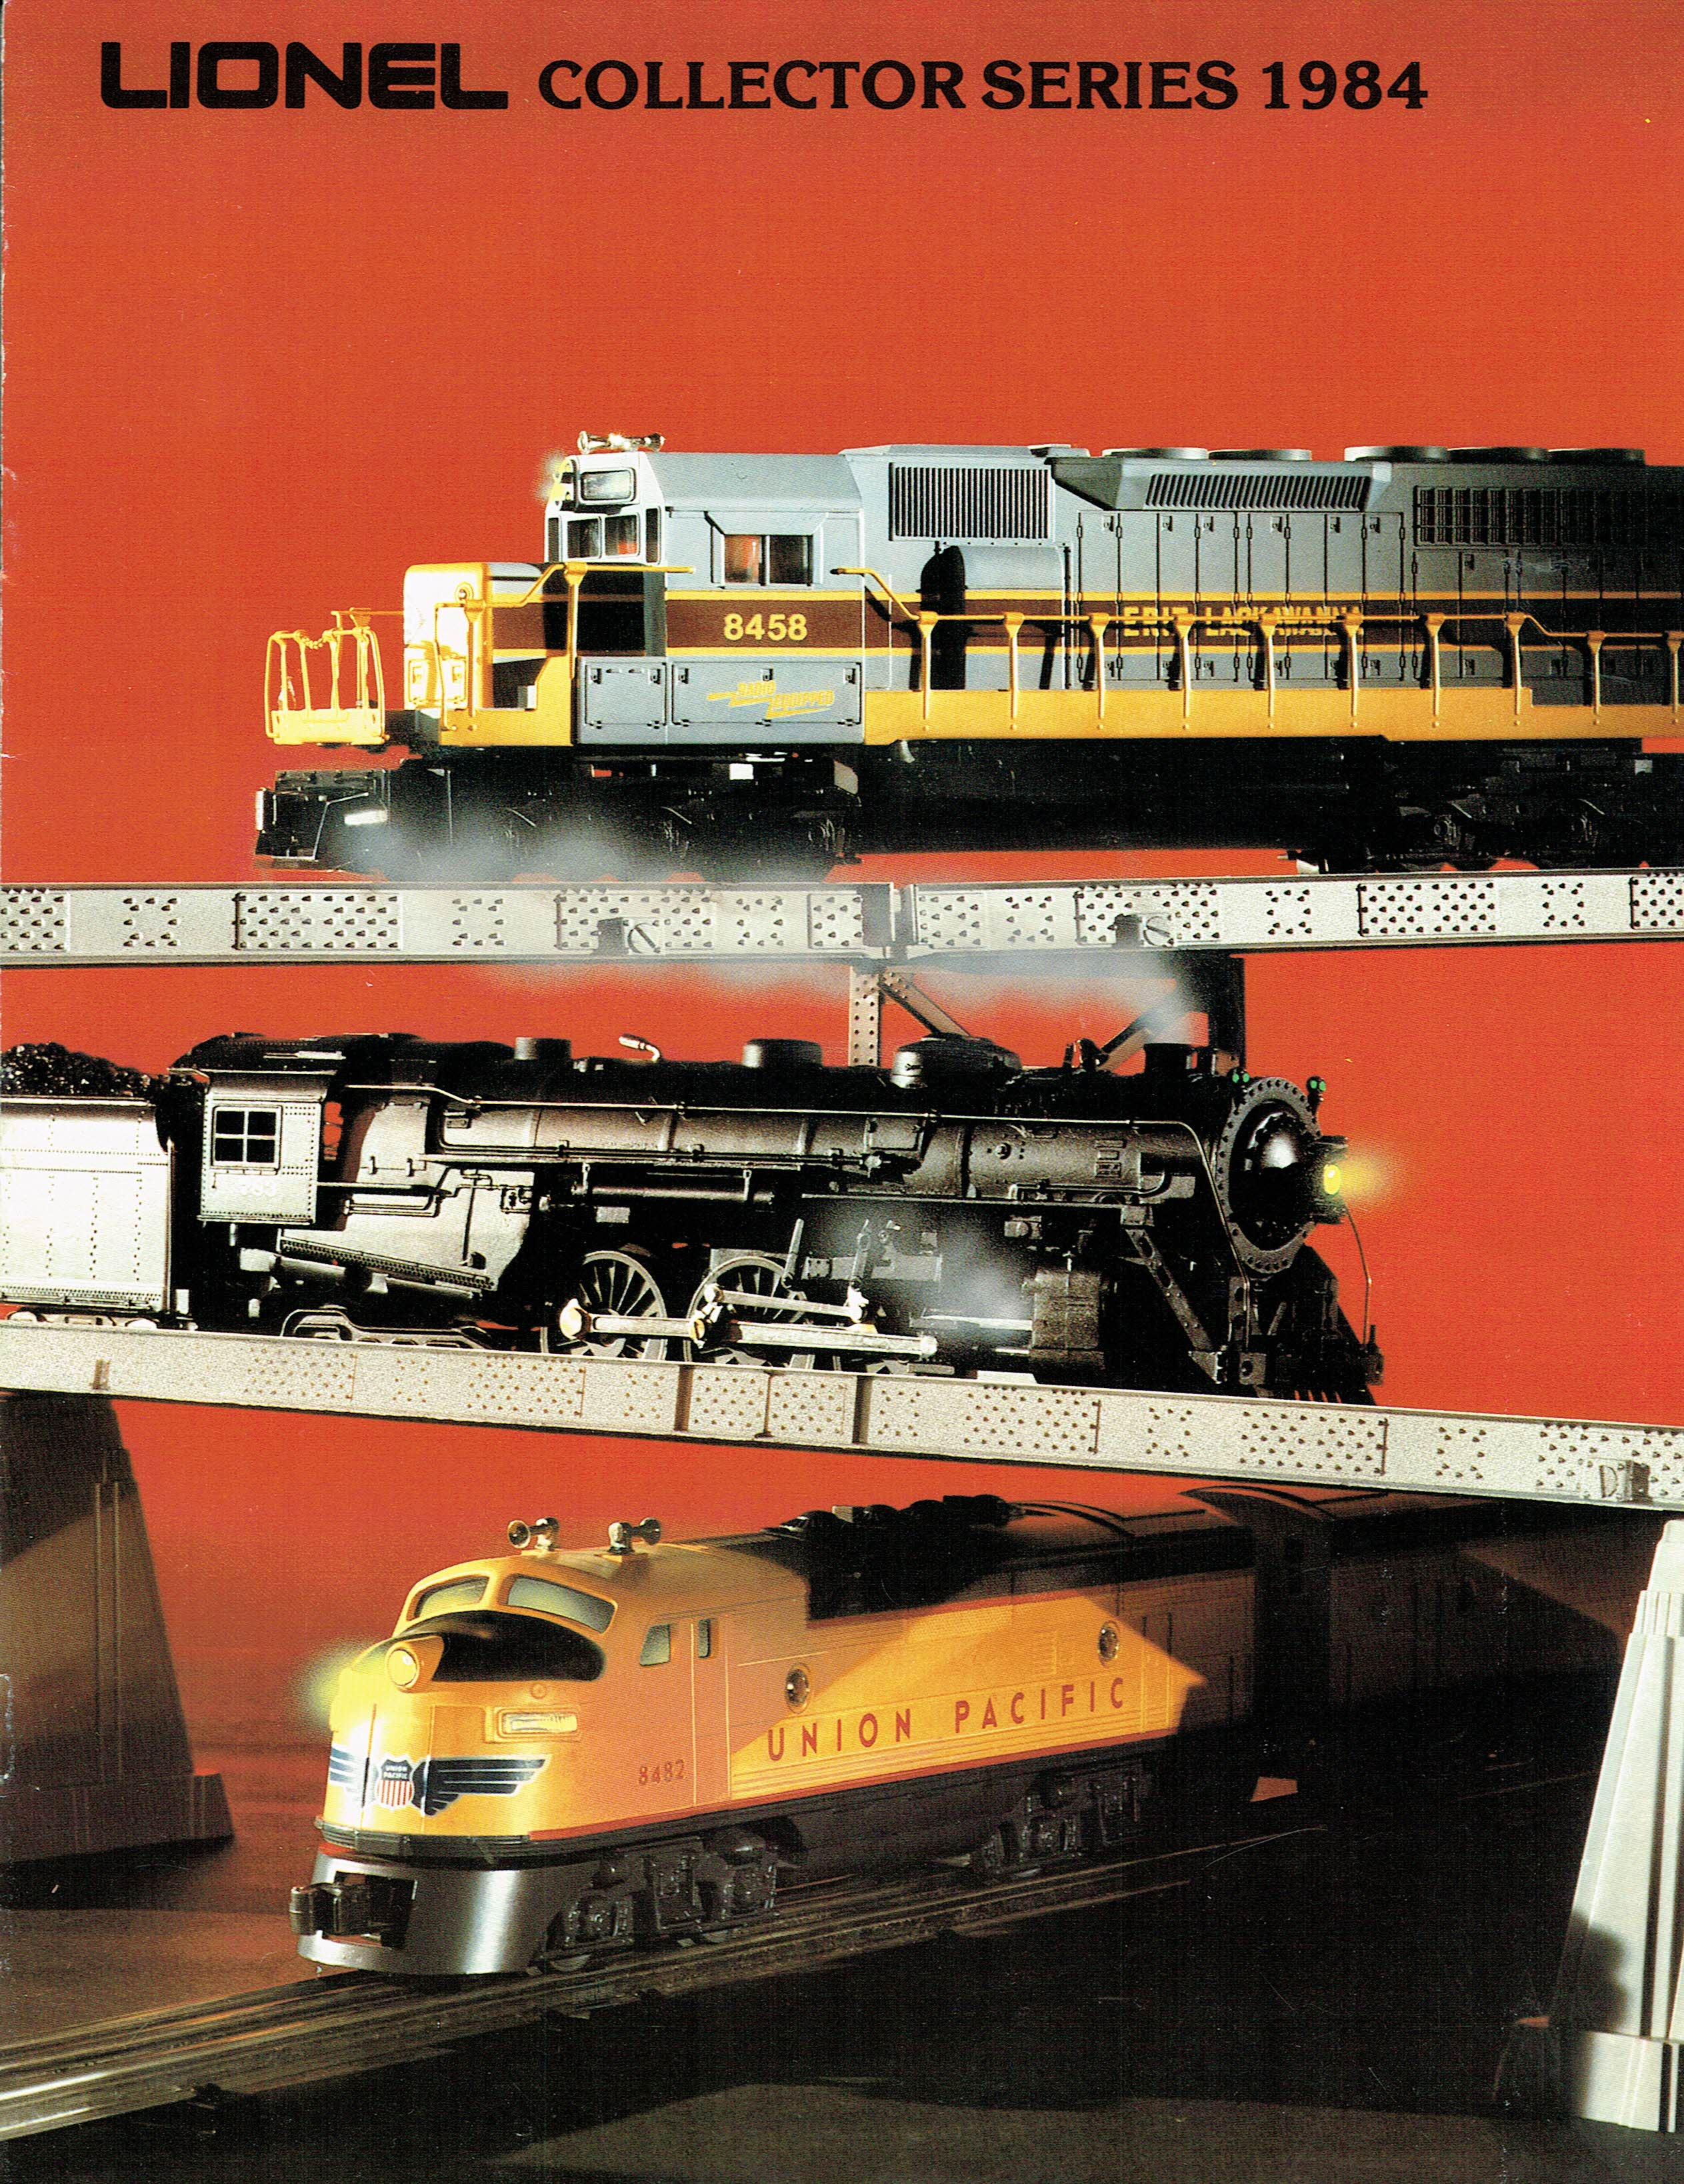 Lionel 1984 Collector Series Catalog image